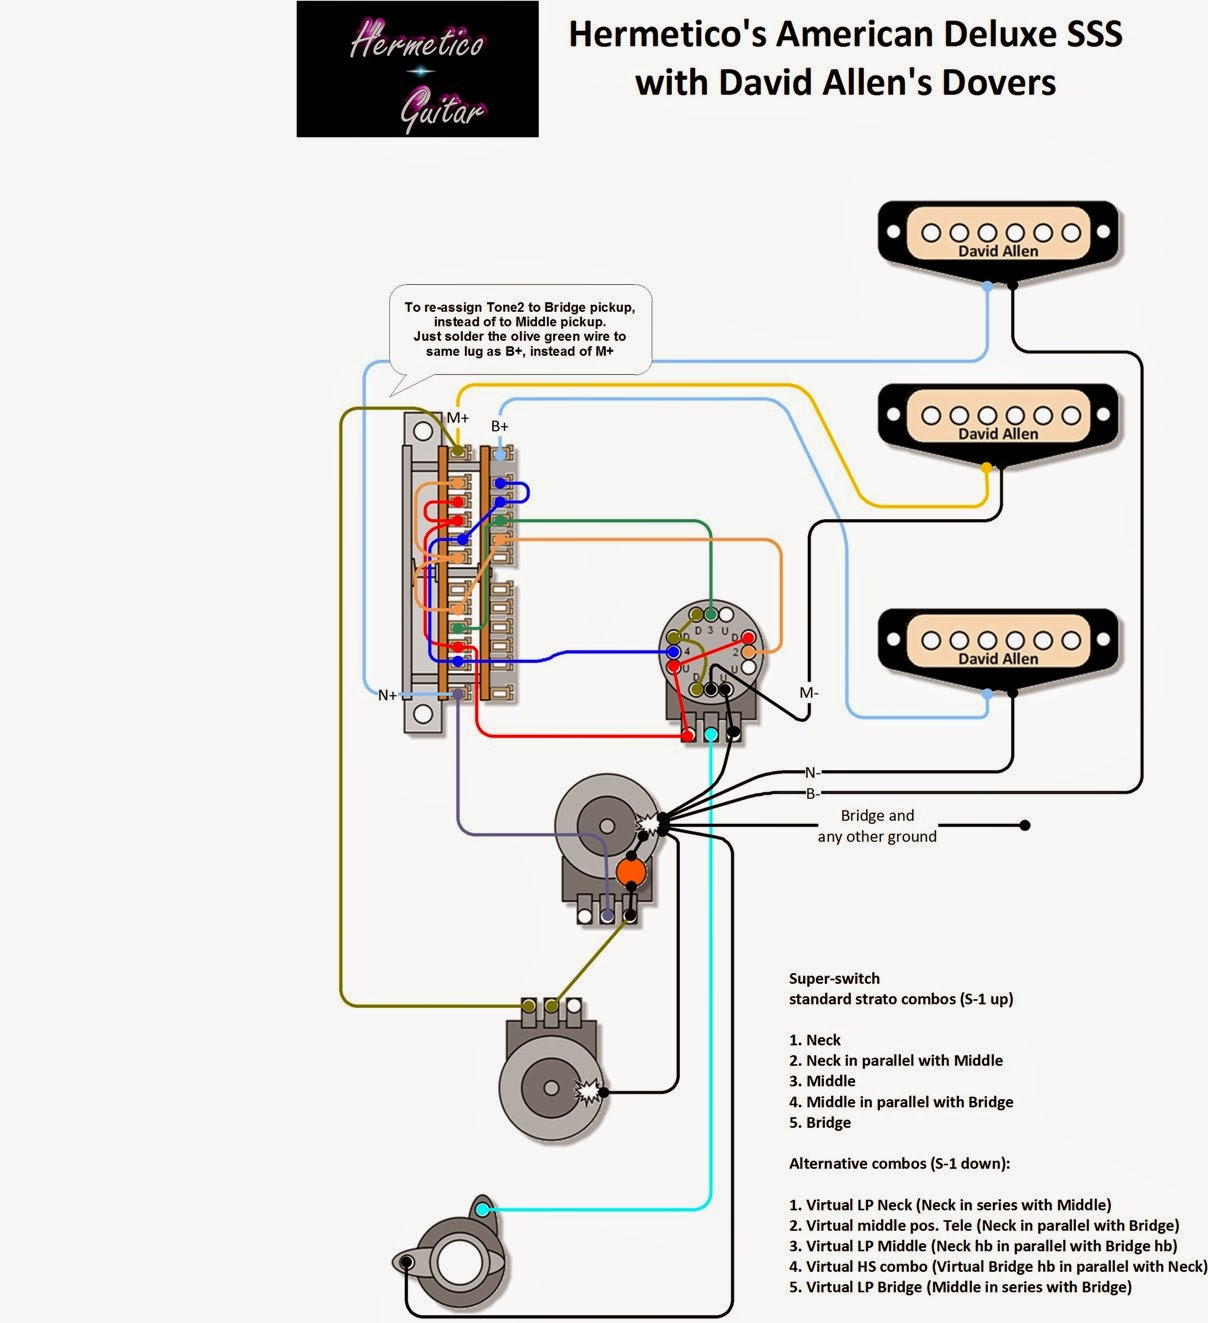 Hermetico's_American_Deluxe_SSS_ _Dovers hermetico guitar fender american deluxe sss (2010 model) a american deluxe stratocaster wiring diagram at bakdesigns.co